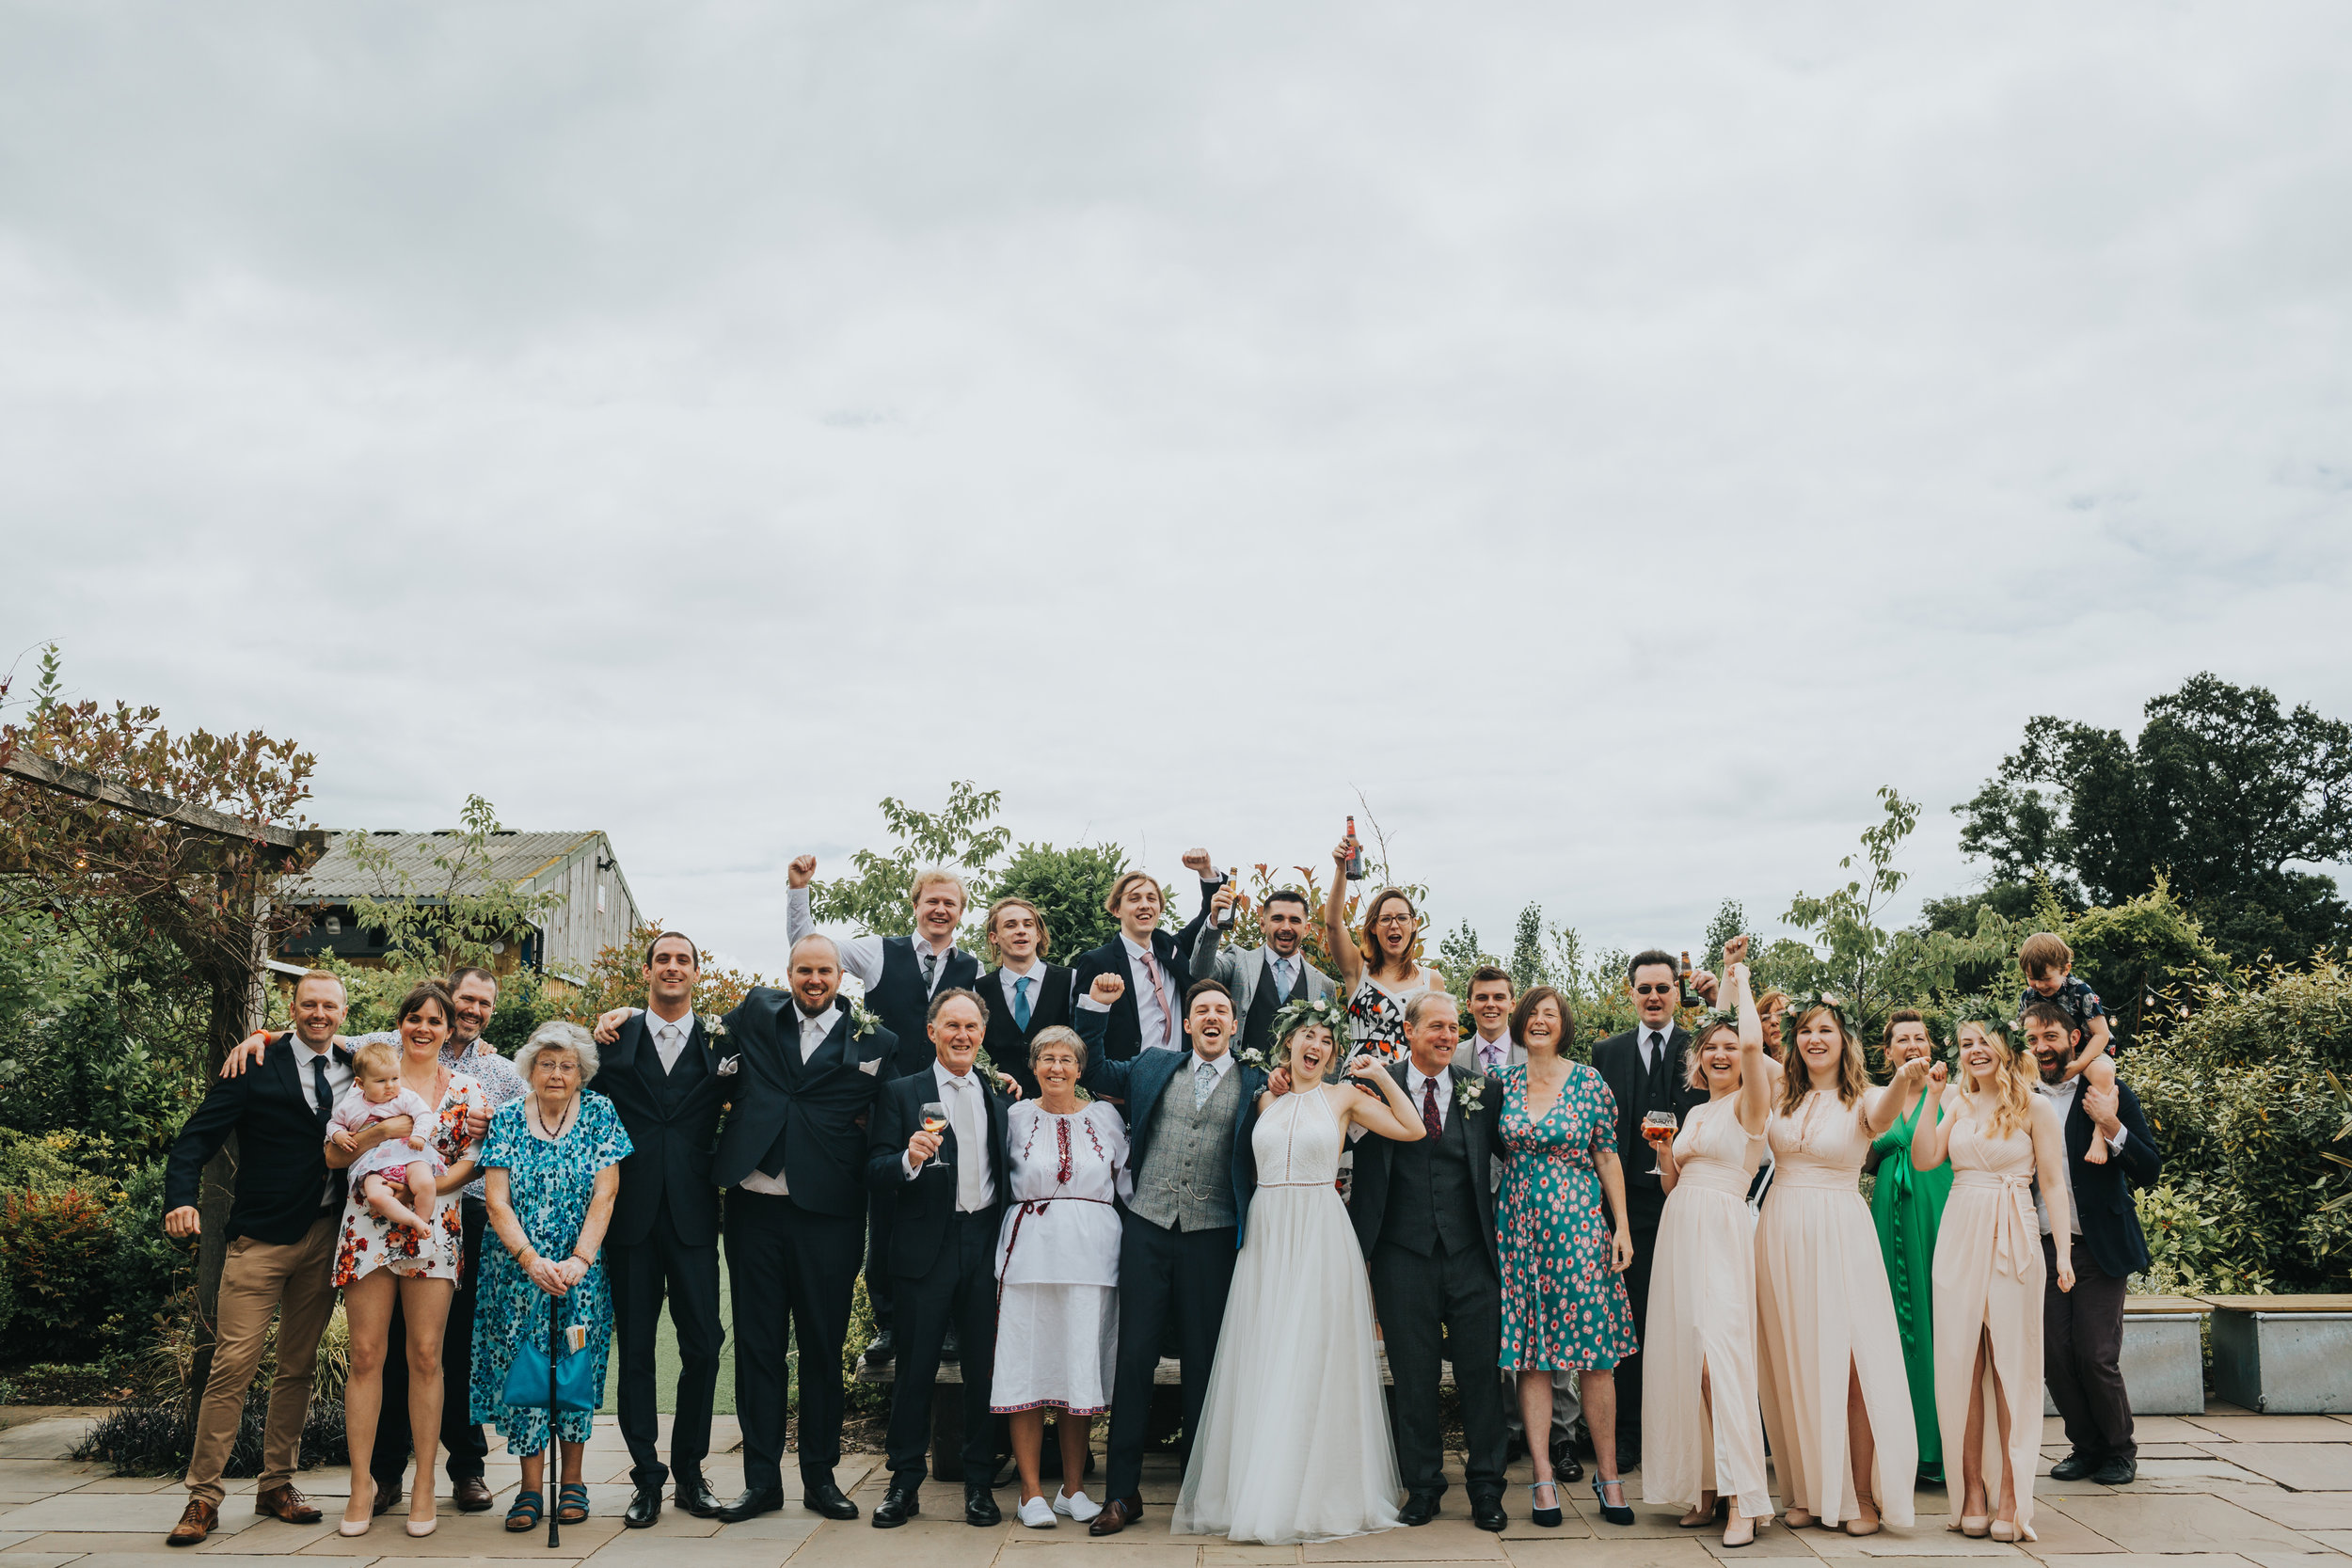 Group photograph of all the wedding guests cheering at Owen House Wedding Barn.